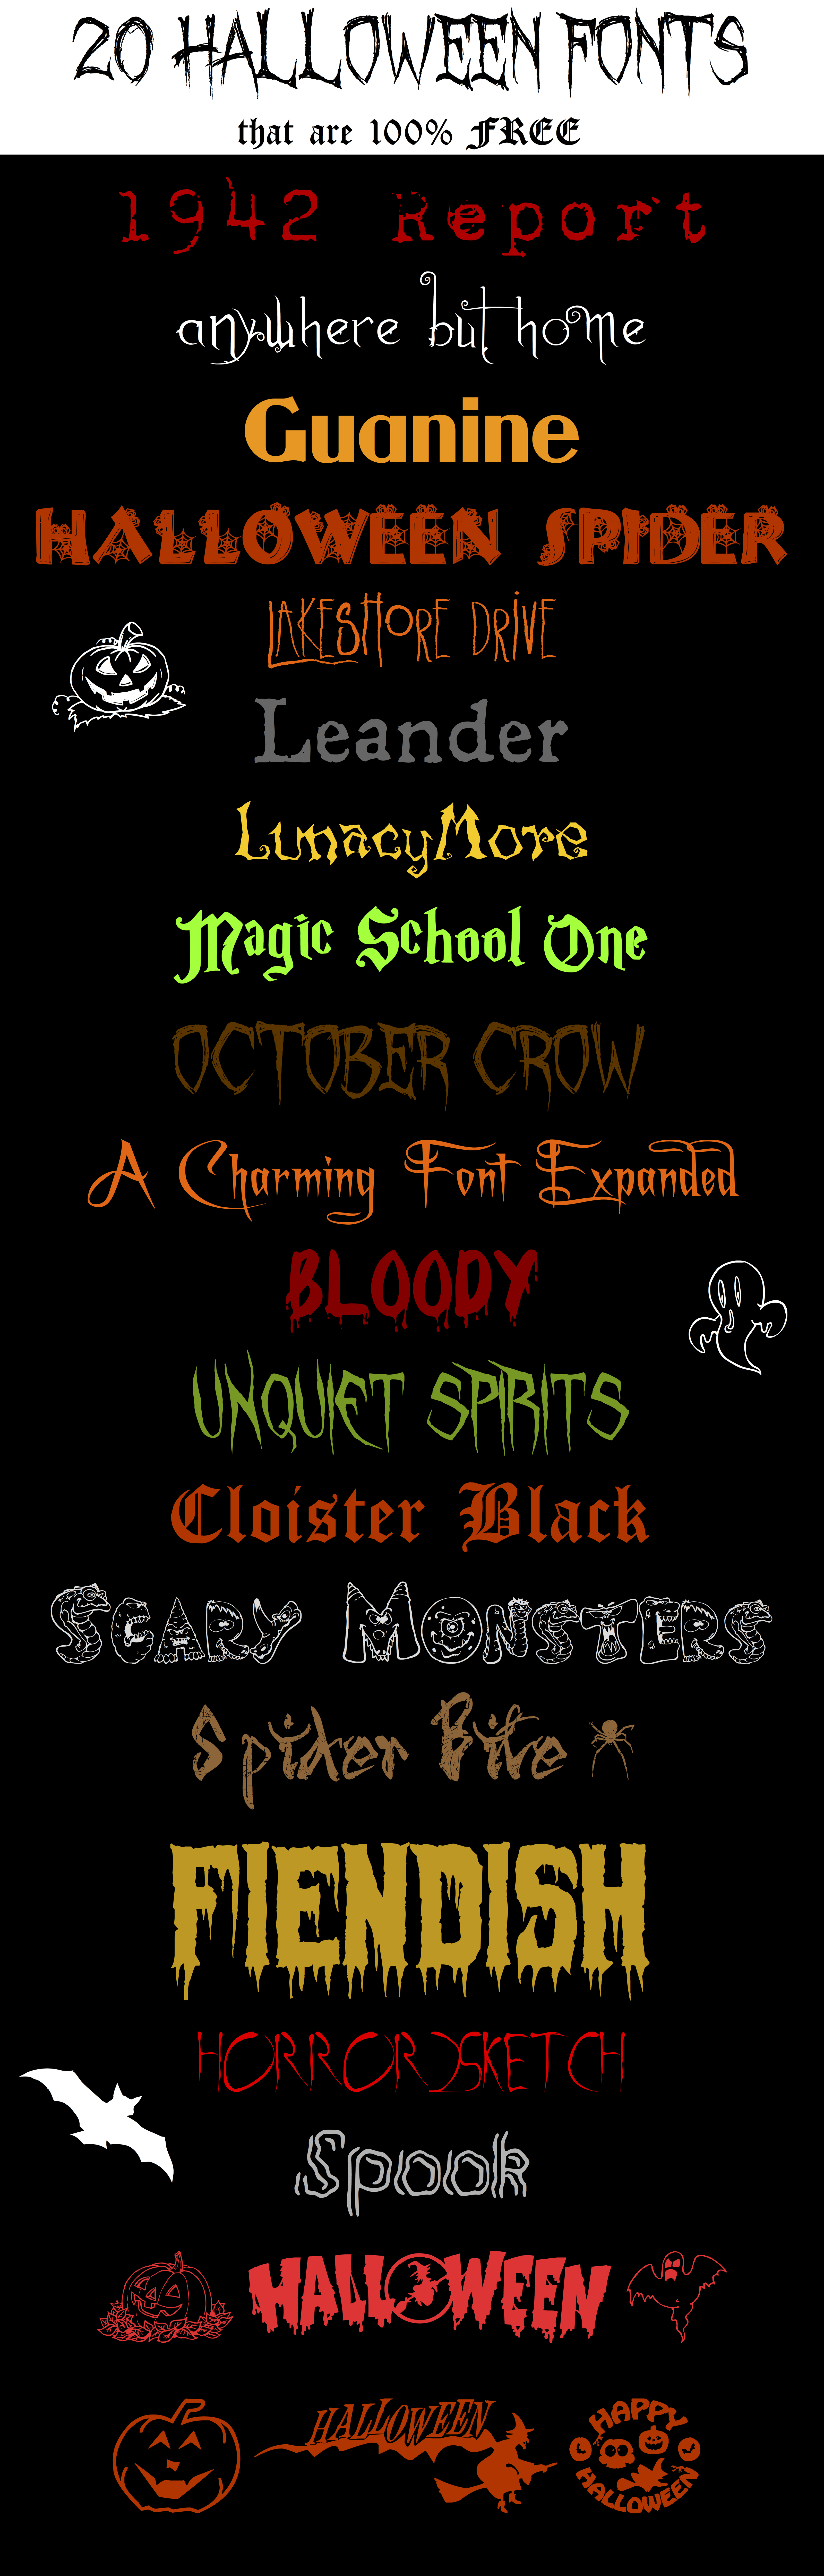 20 Halloween Fonts that are 100% FREE